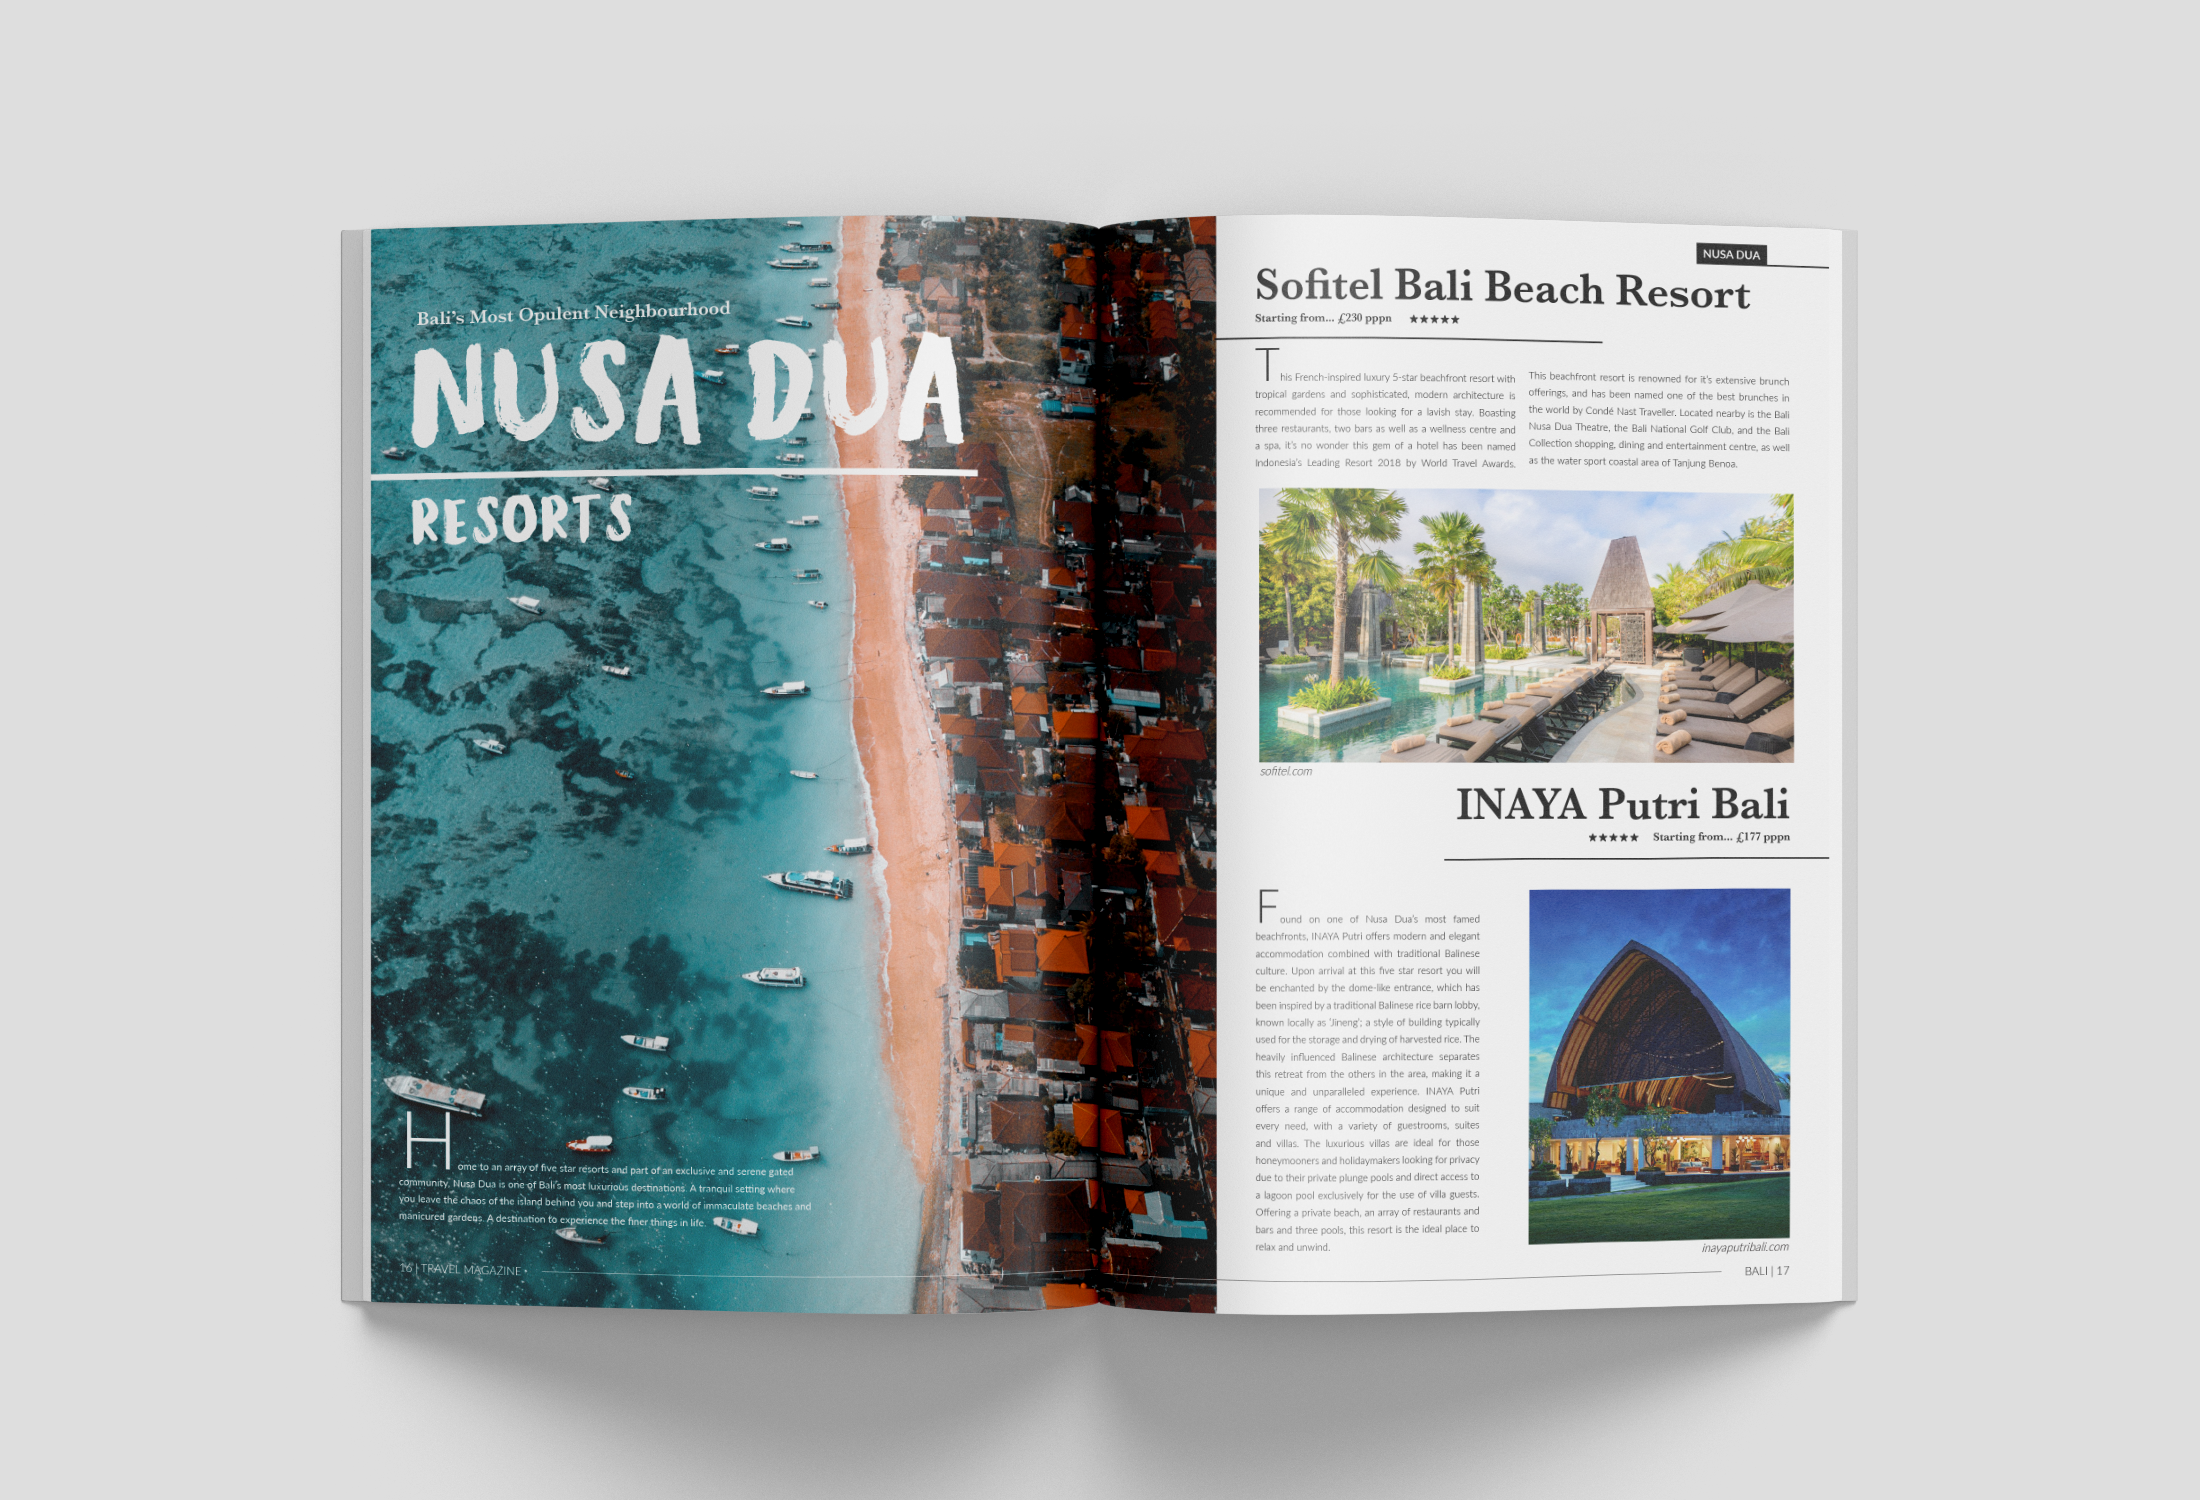 Brochure design for a travel company displaying hotel options in Nusa Dua resort